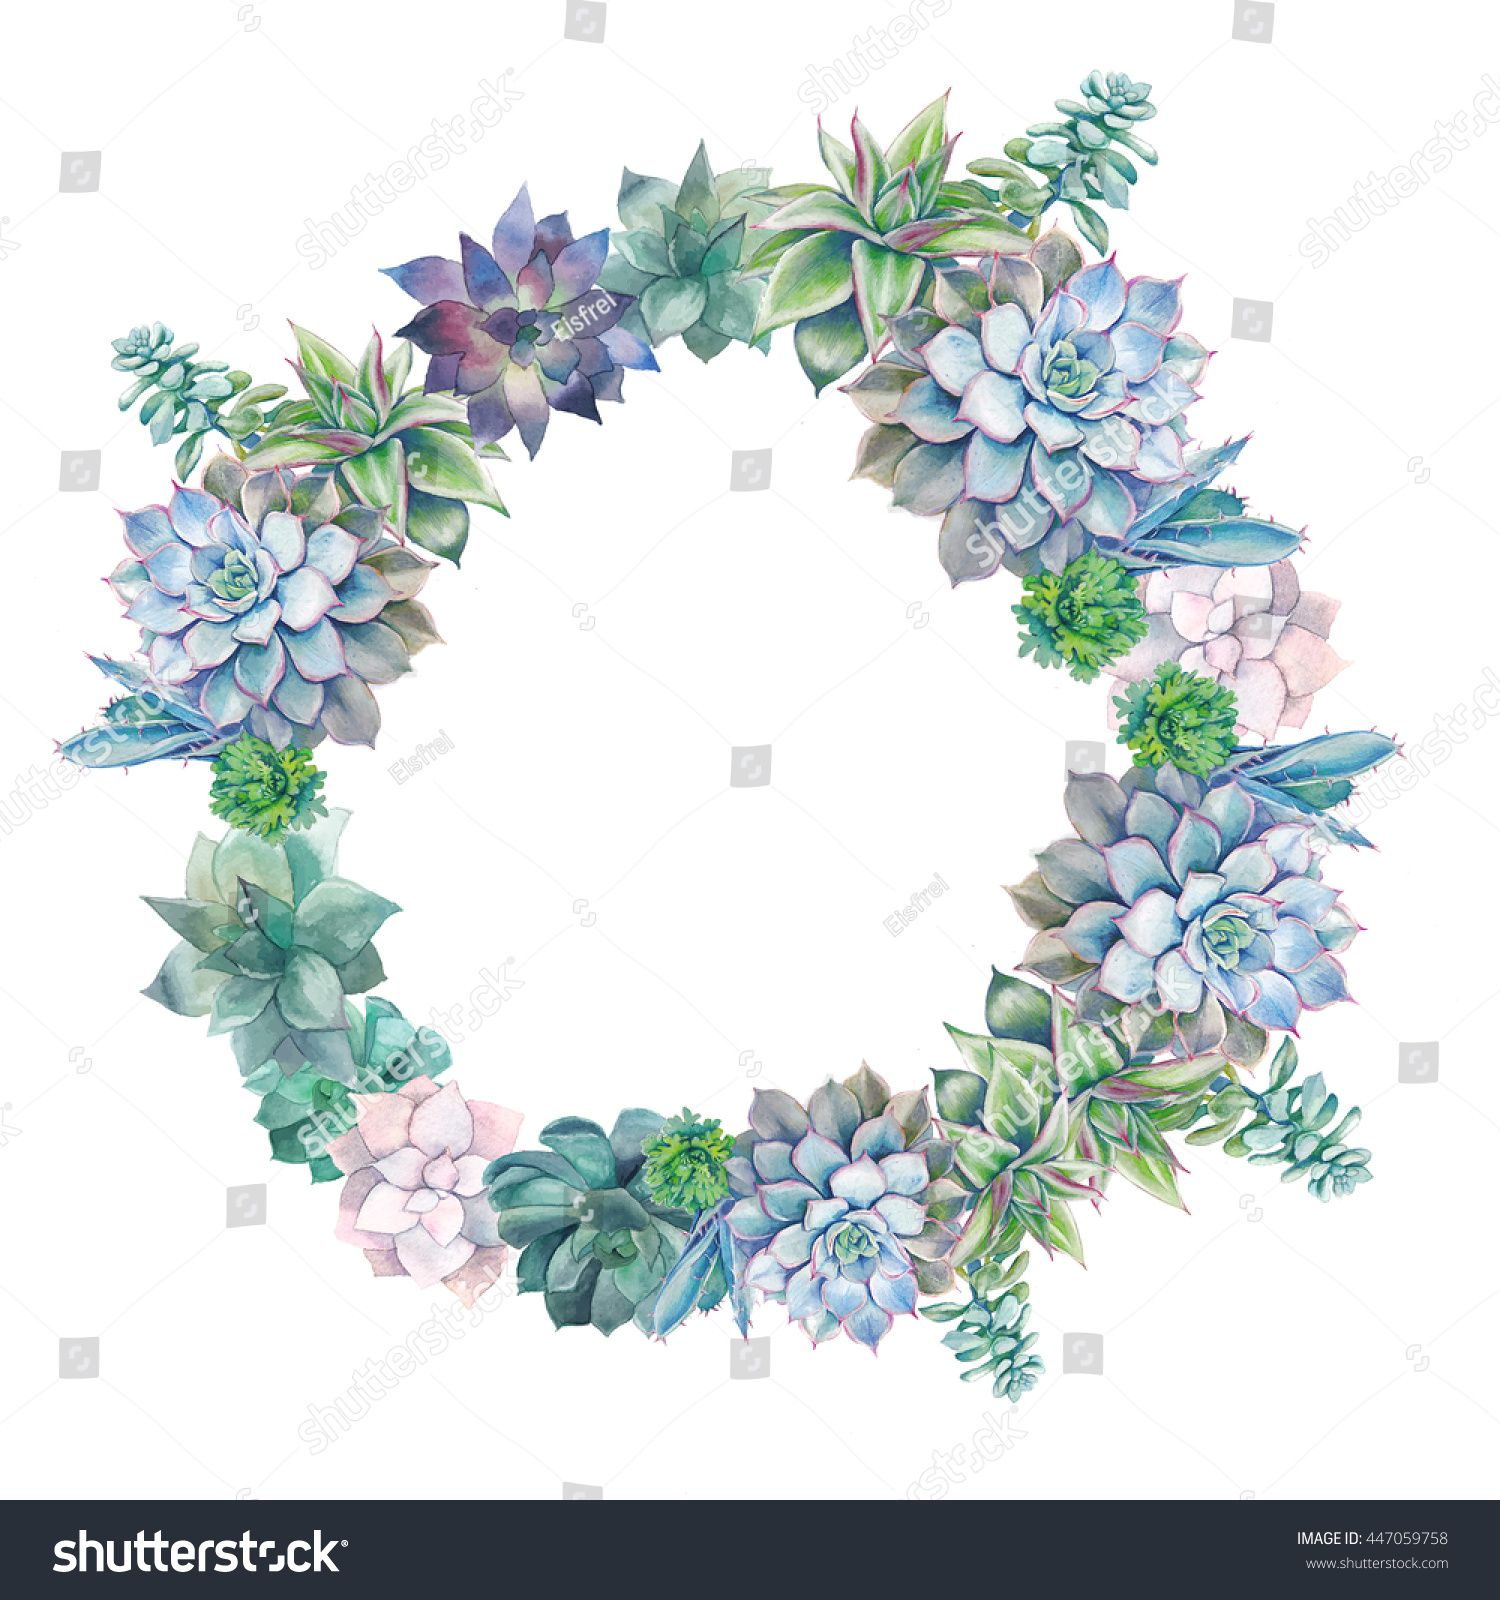 Pin on wedding ideas. Succulent clipart round